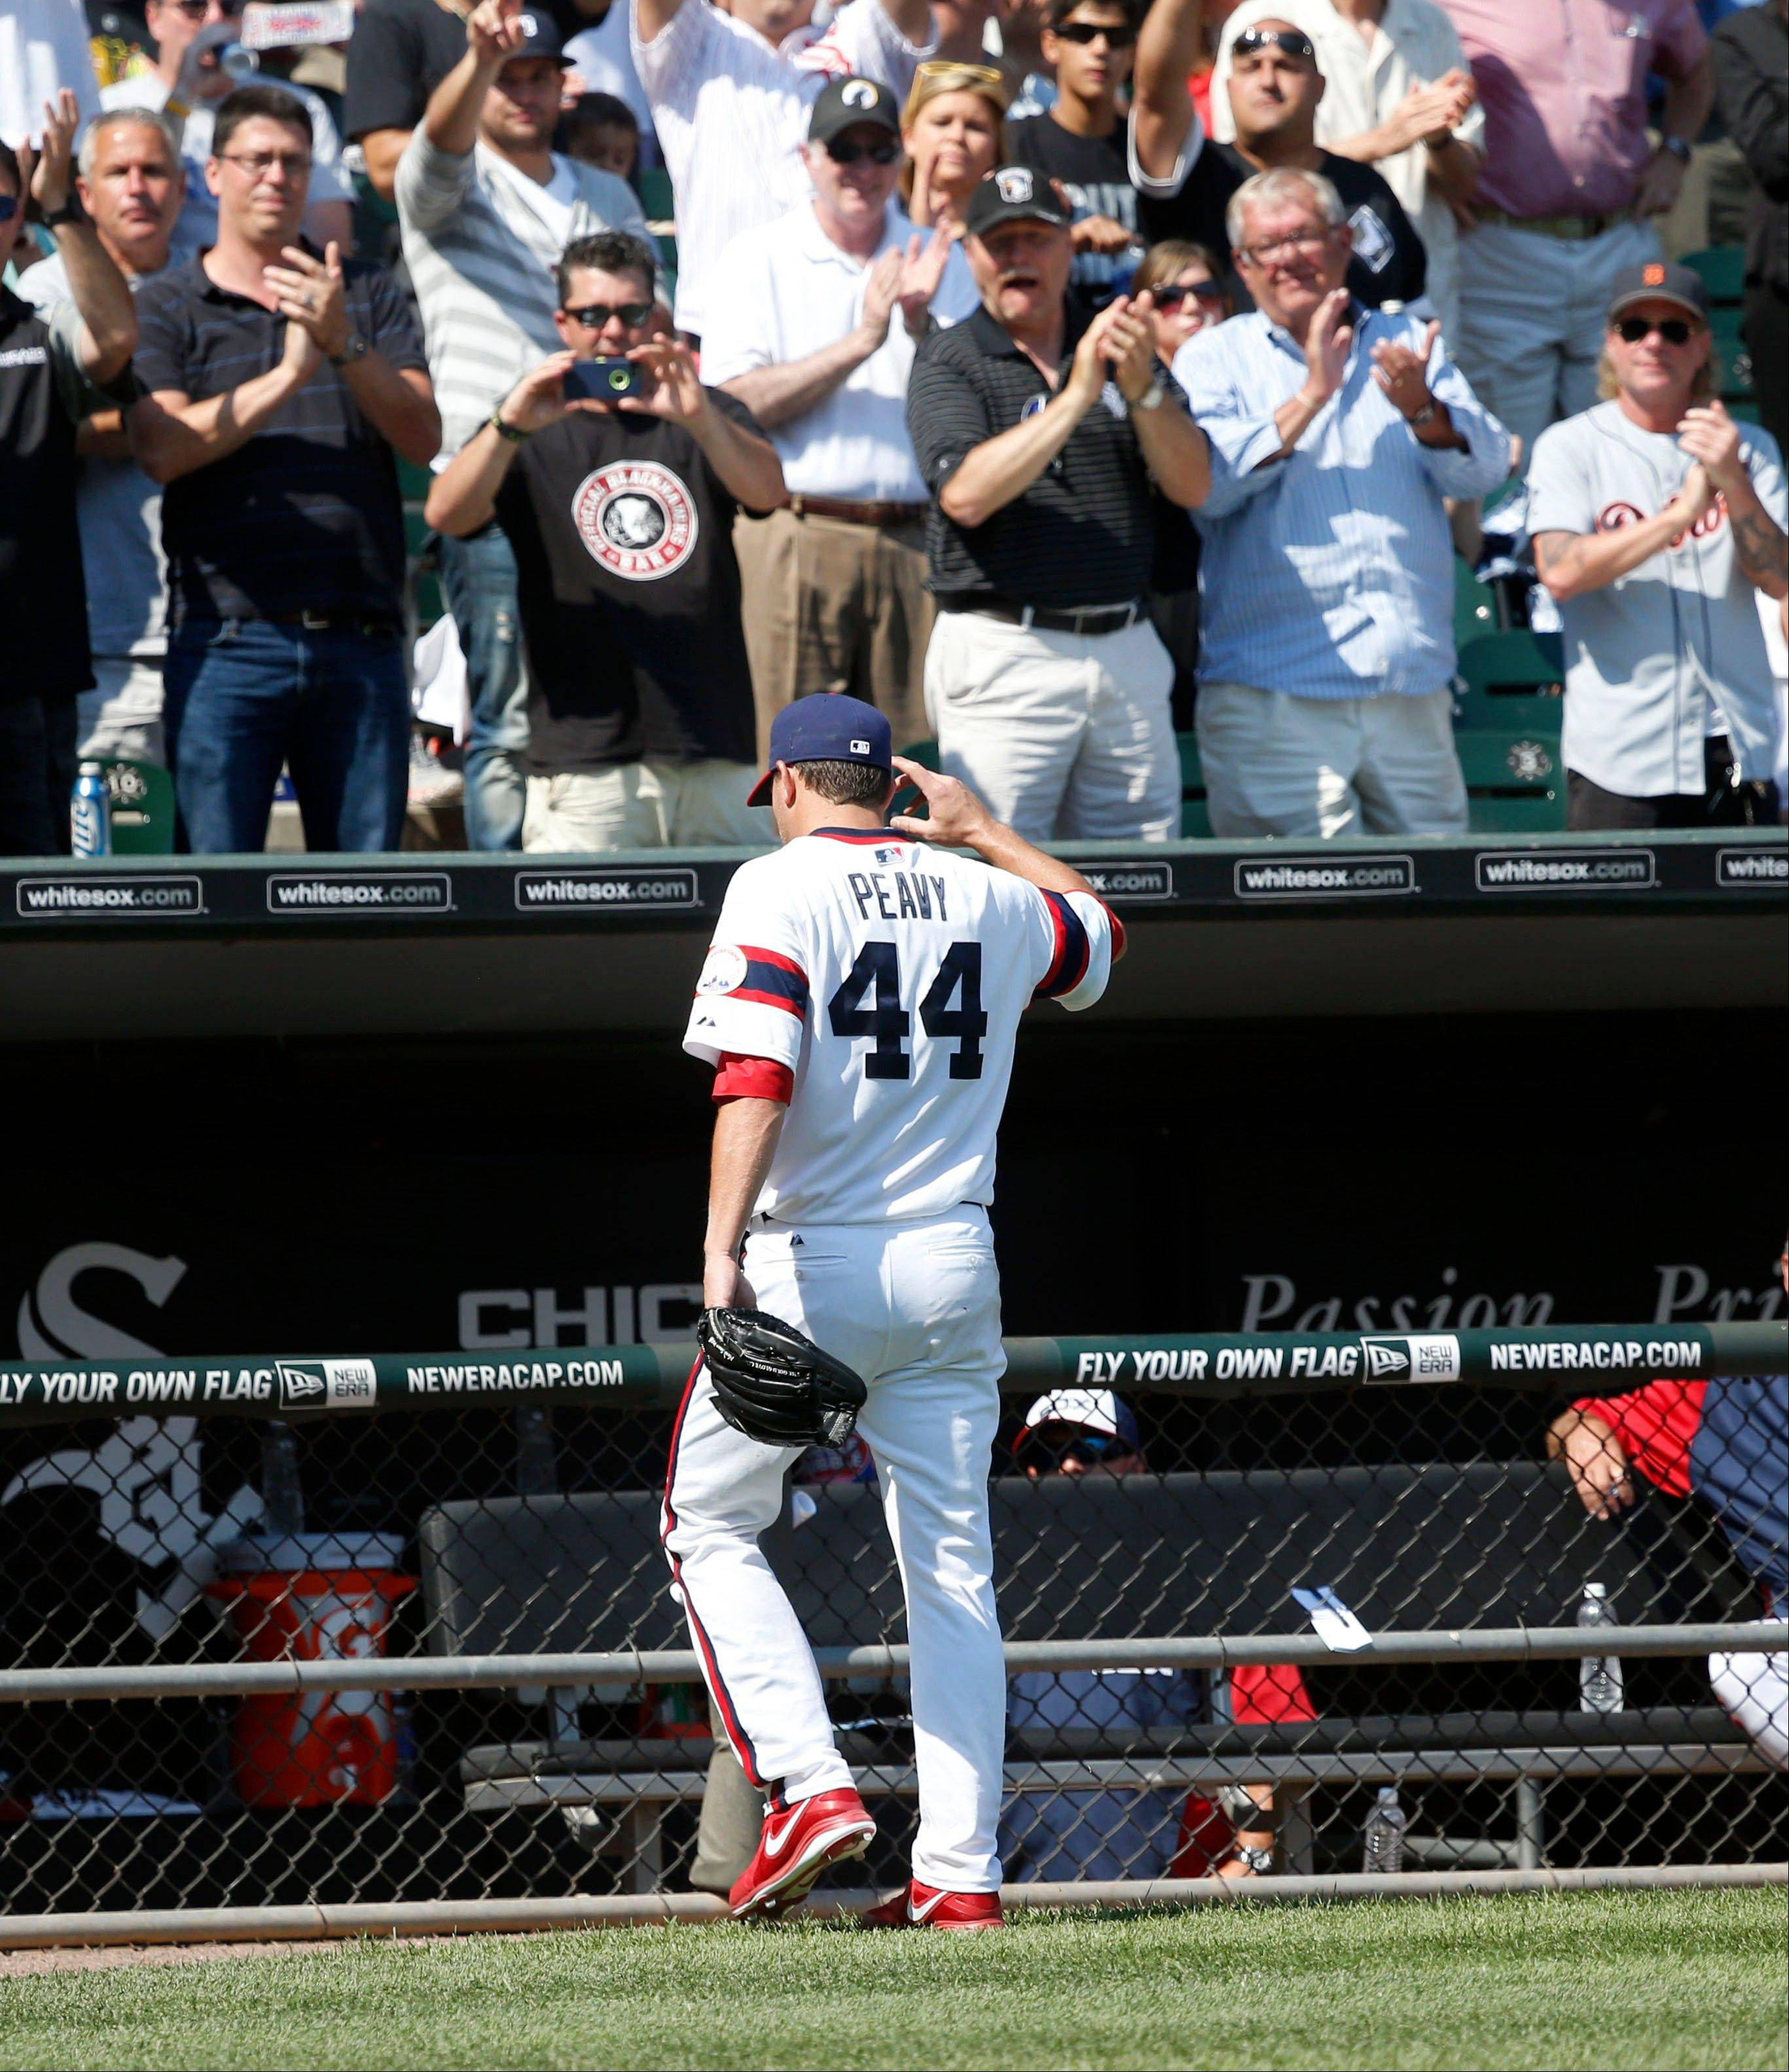 Jake Peavy waves to a cheering crowd as he leaves during the eighth inning of the White Sox' 7-4 victory over Detroit on Thursday at U.S. Cellular Field.